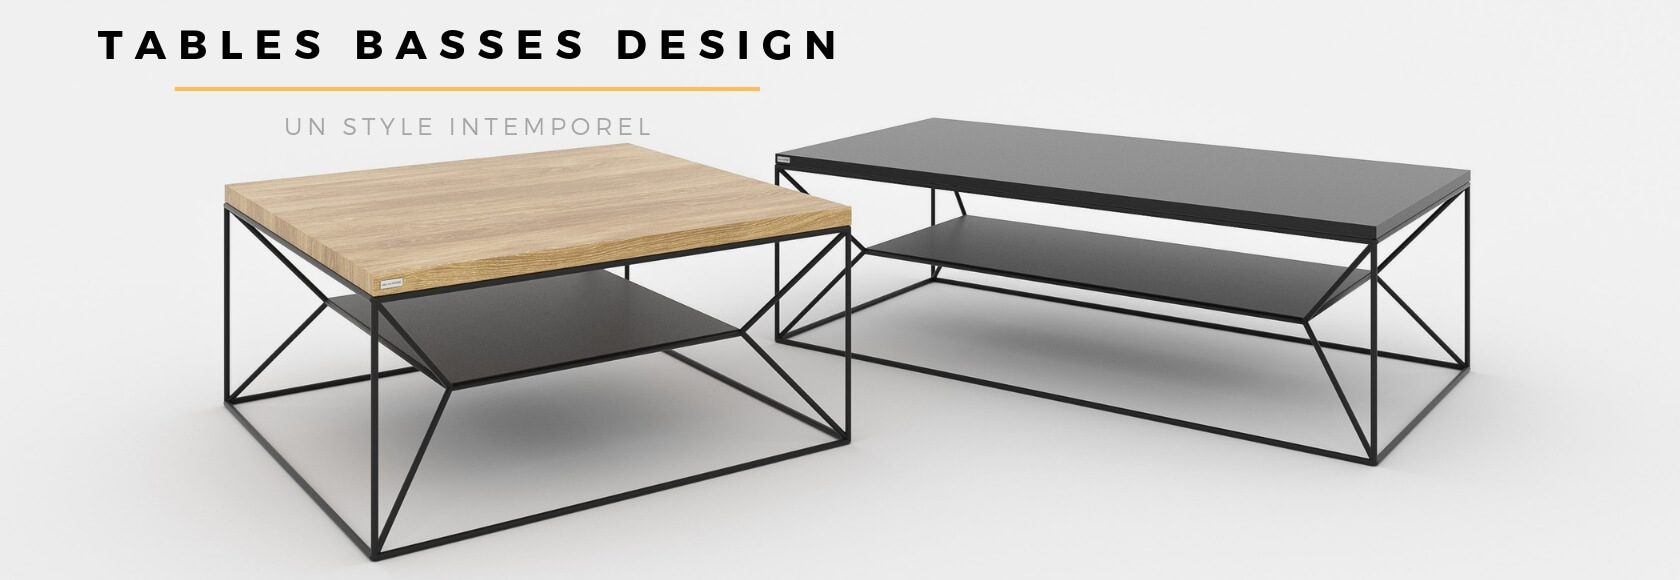 Table Basse Console Meuble Console Mobilier Métal Table Basse Design Jielde Tolix